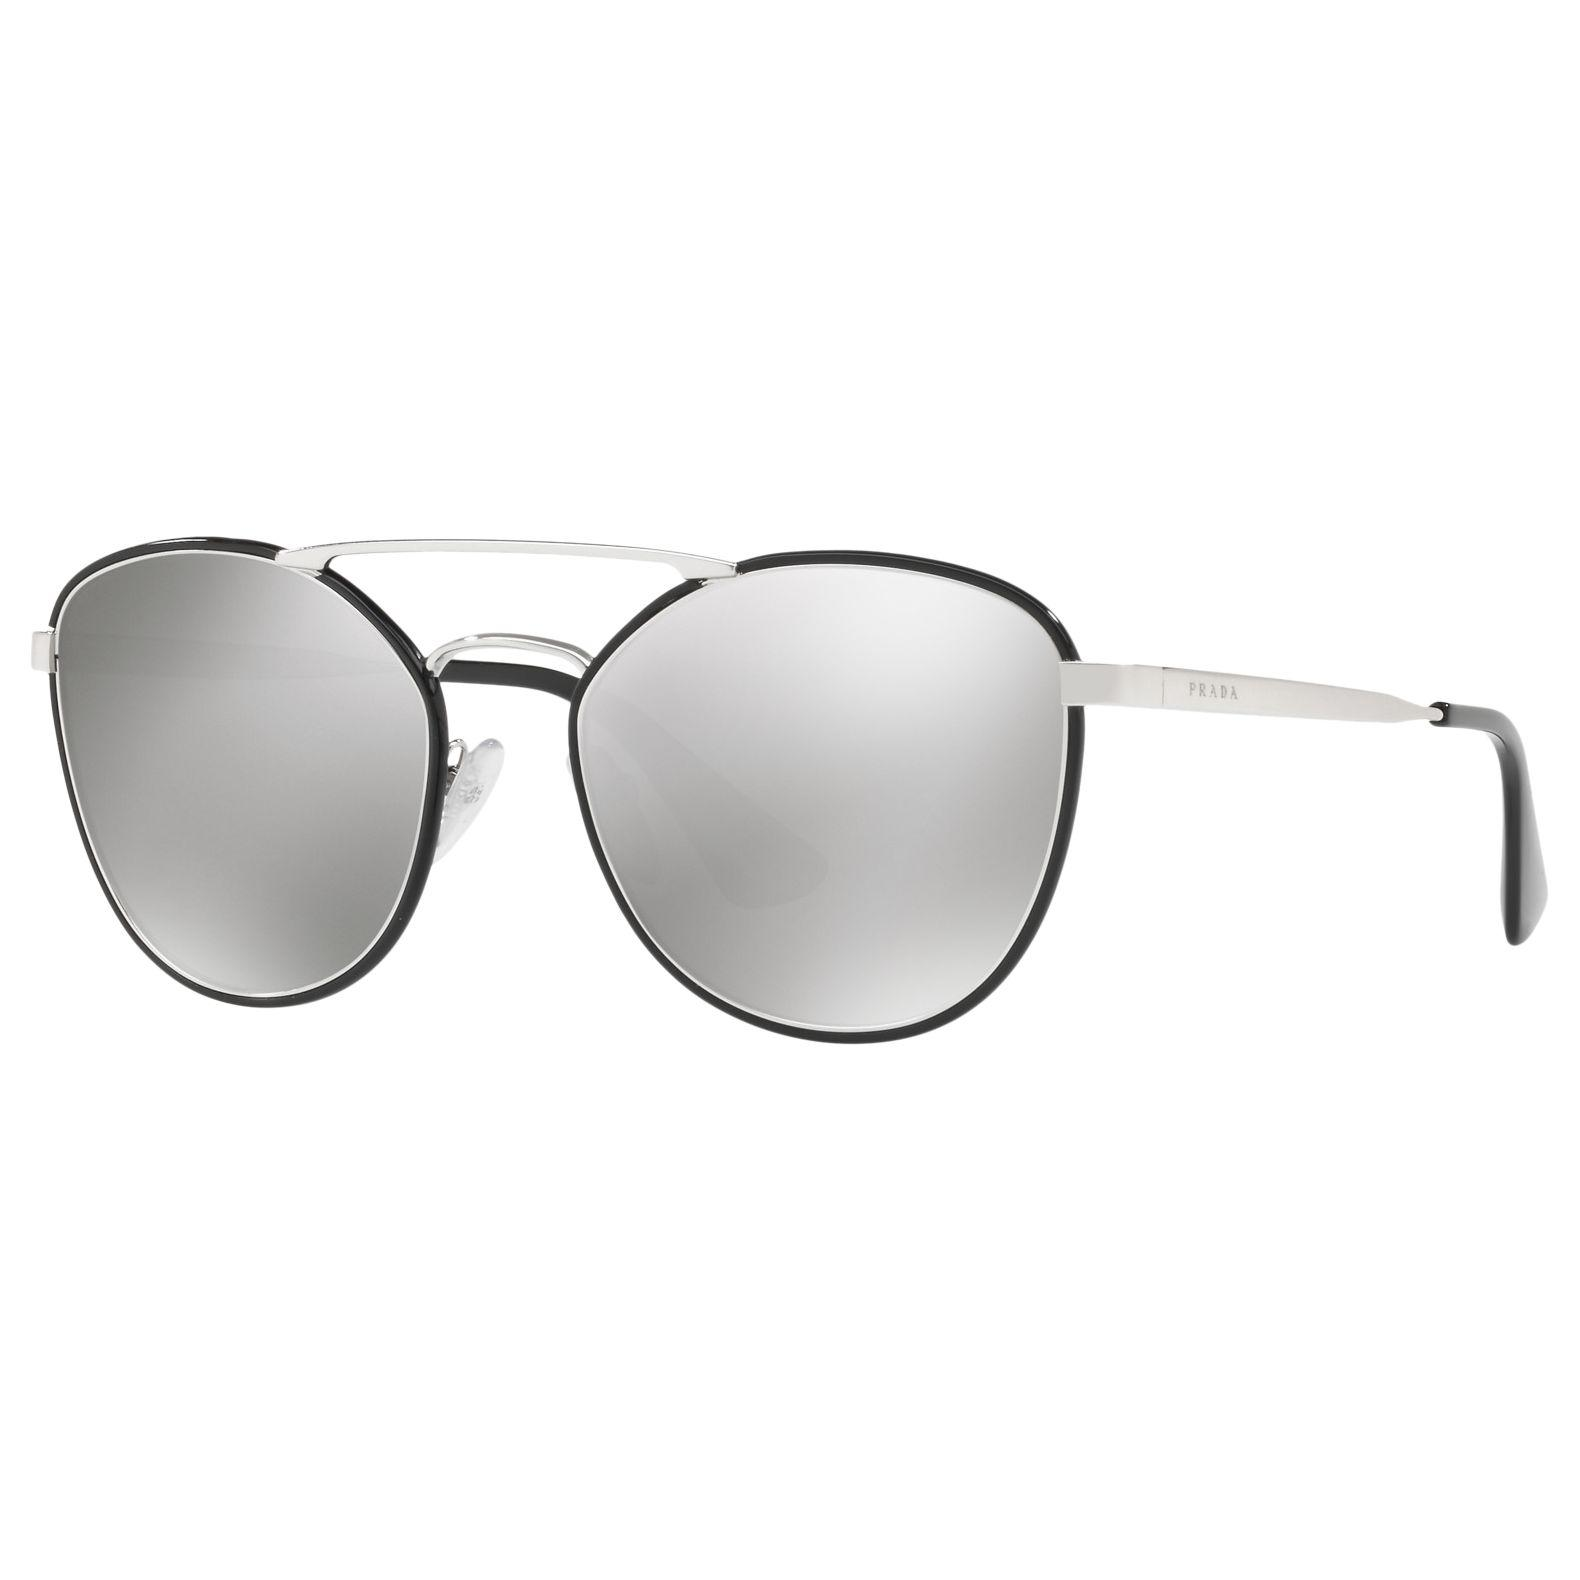 a258e10d4c Prada Pr 63ts Women s Oval Sunglasses in Metallic - Lyst